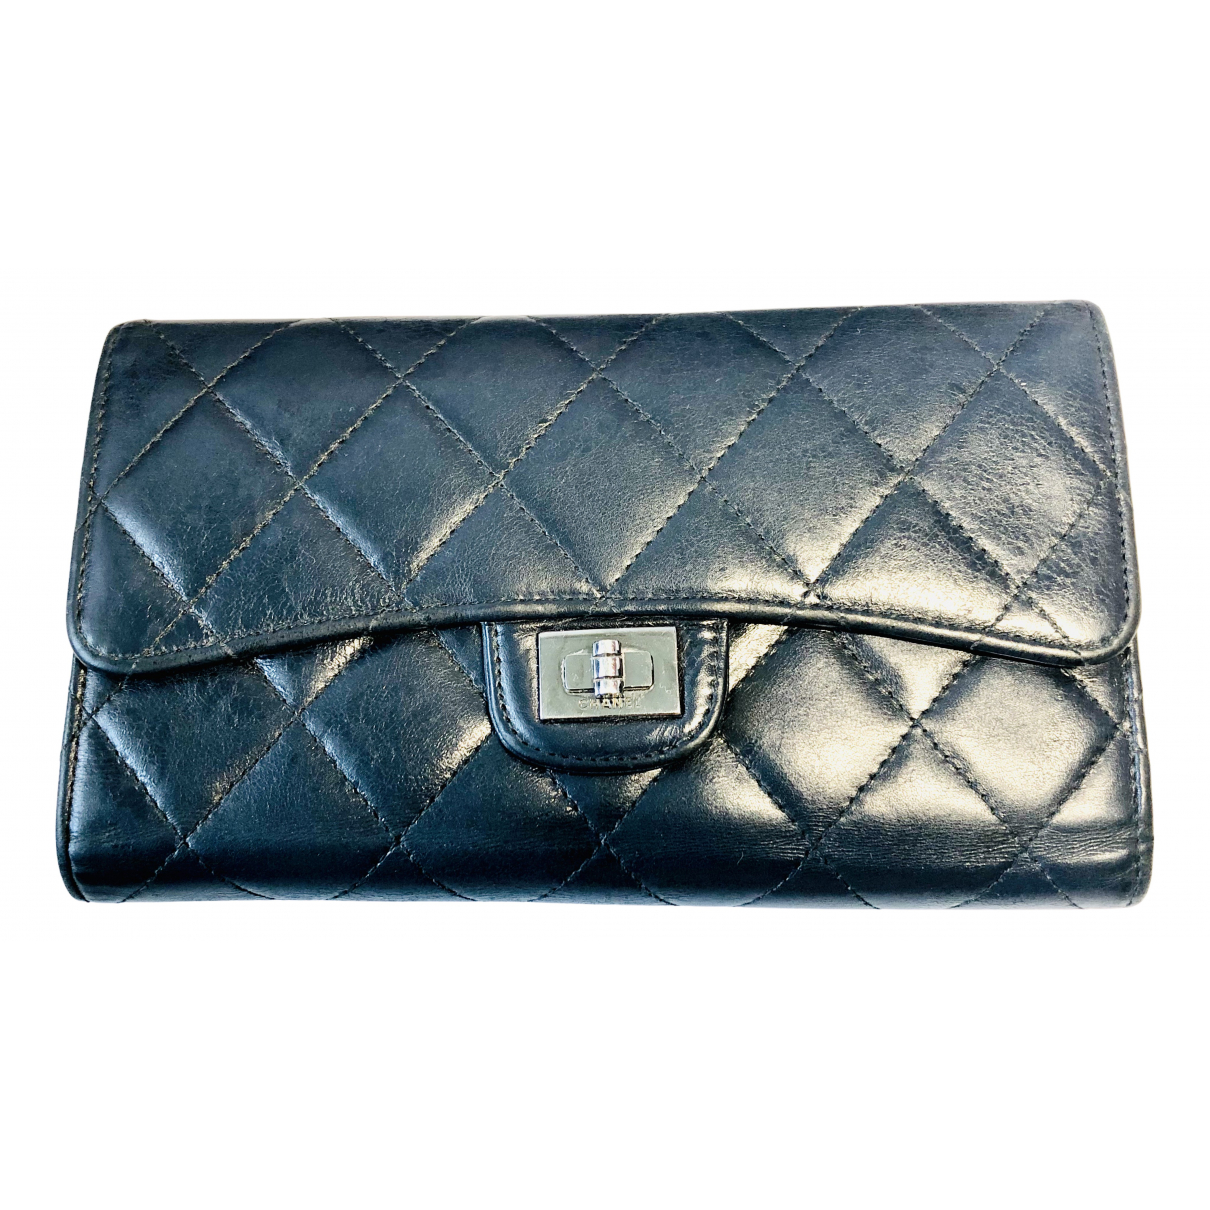 Chanel 2.55 Navy Leather wallet for Women N